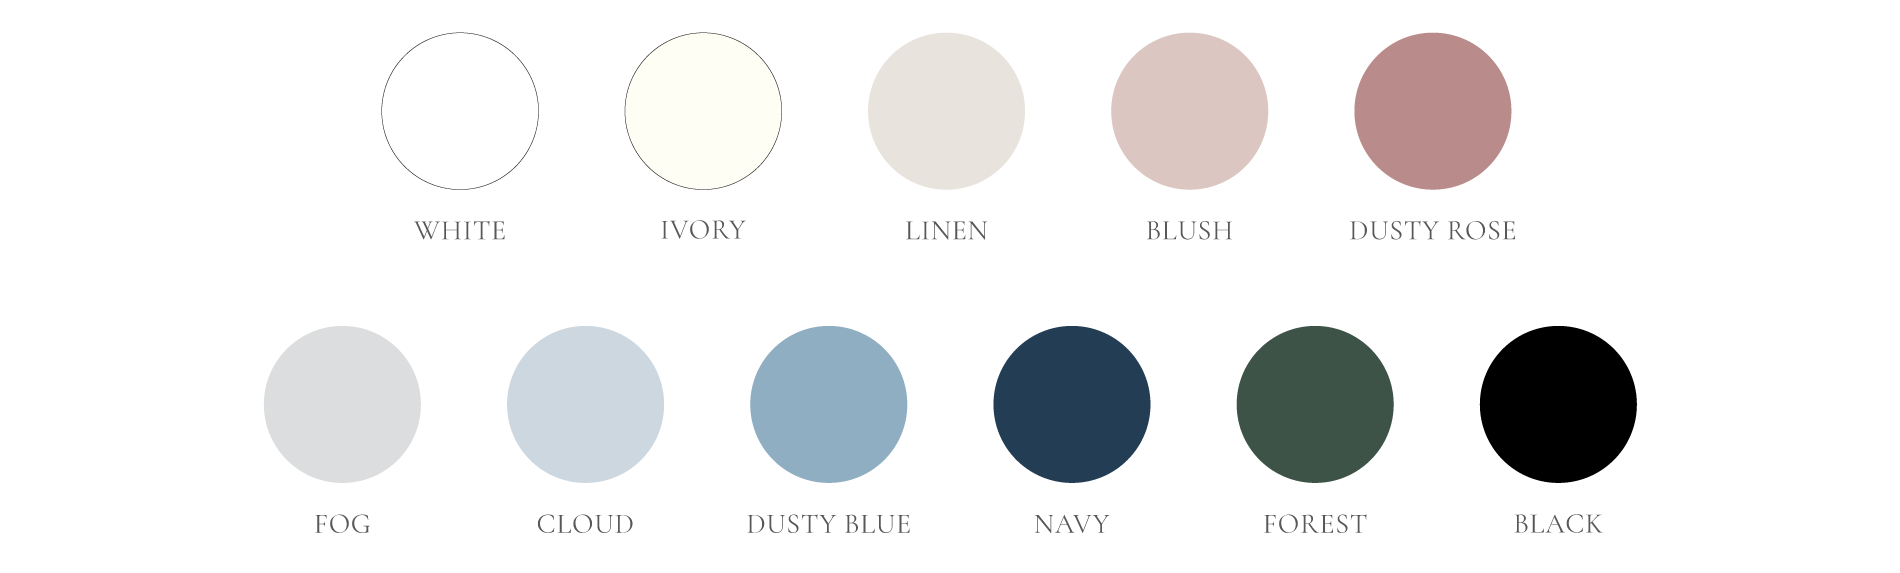 Envelope colors - white, ivory, linen, blush, dusty rose, fog, cloud, dusty blue, navy, forest, and black.